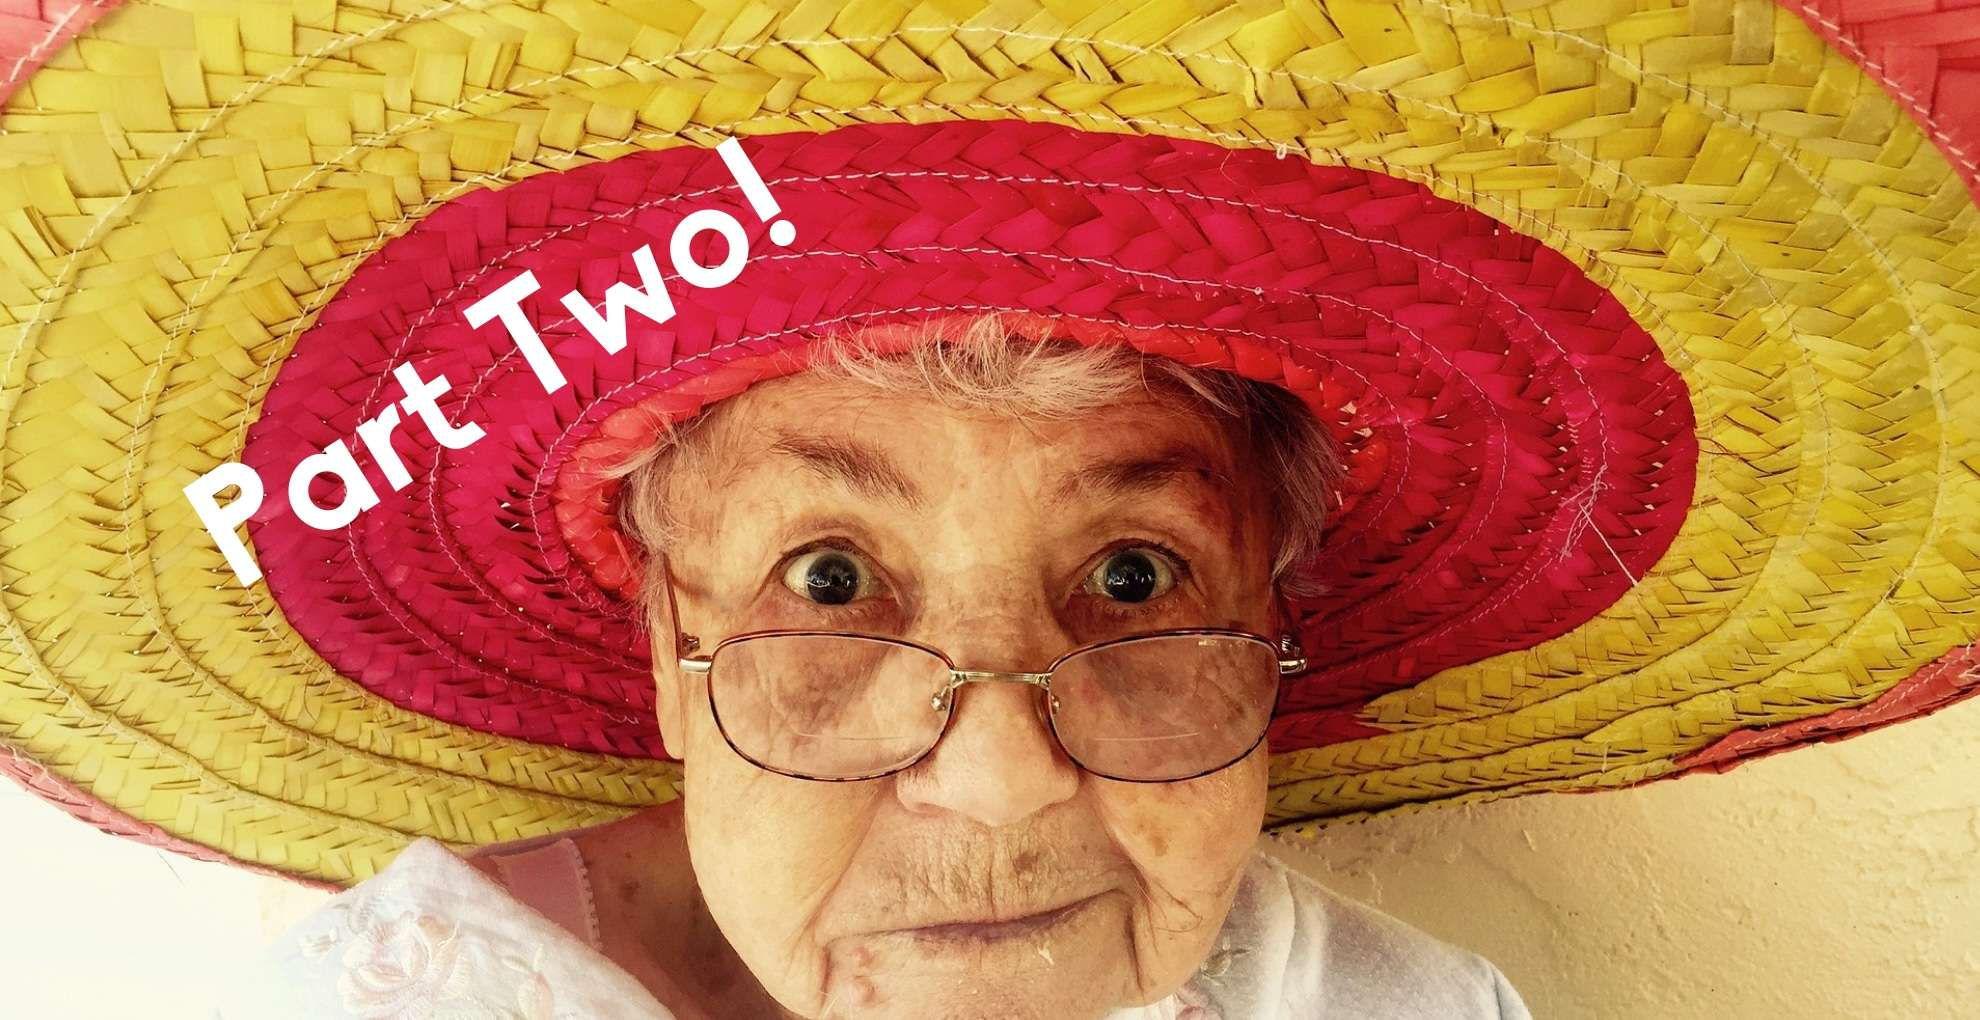 Old woman with a big yellow and red hat